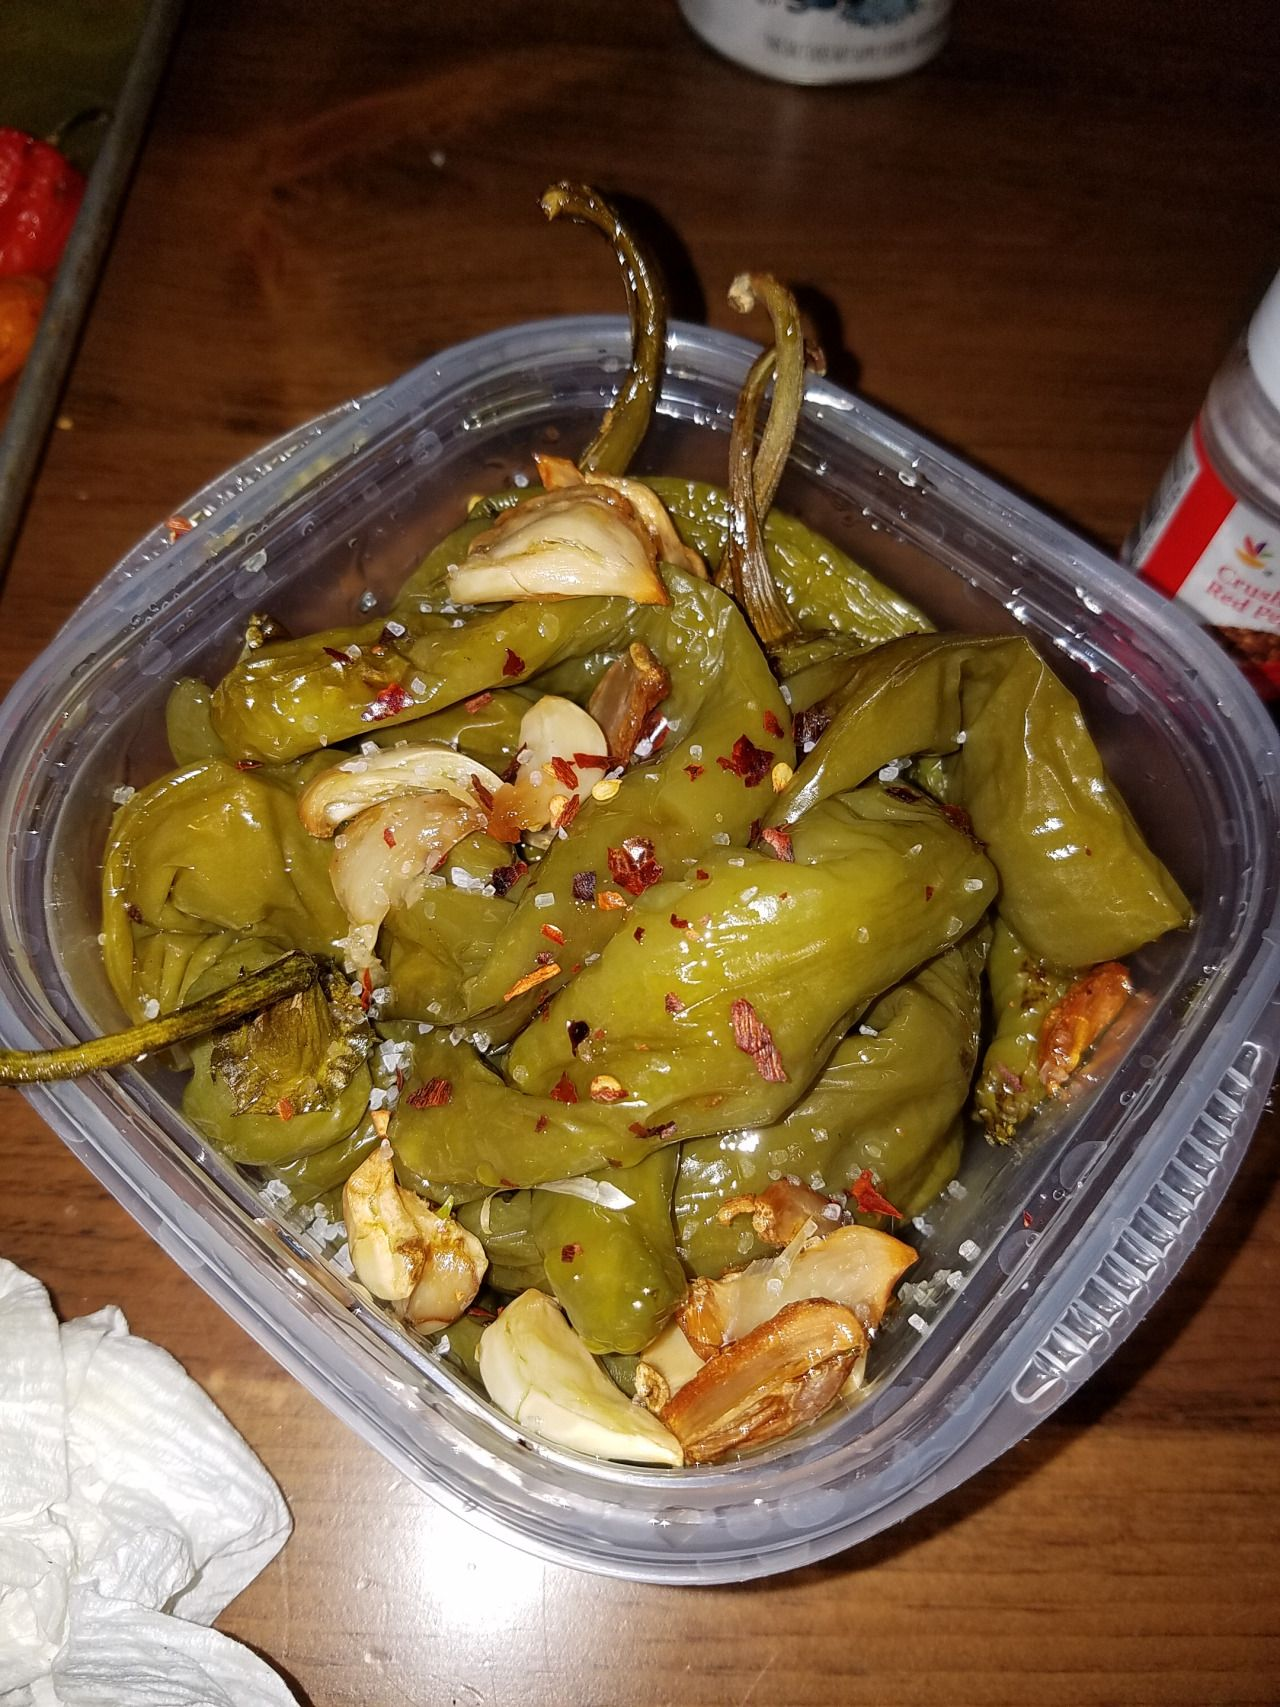 Roasted Peppers Italian Long Hots 1 Pound Garlic 6 7 Cloves Olive Oil 1 Cup Red Chili Flakes Das Stuffed Peppers Stuffed Hot Peppers Roasted Peppers